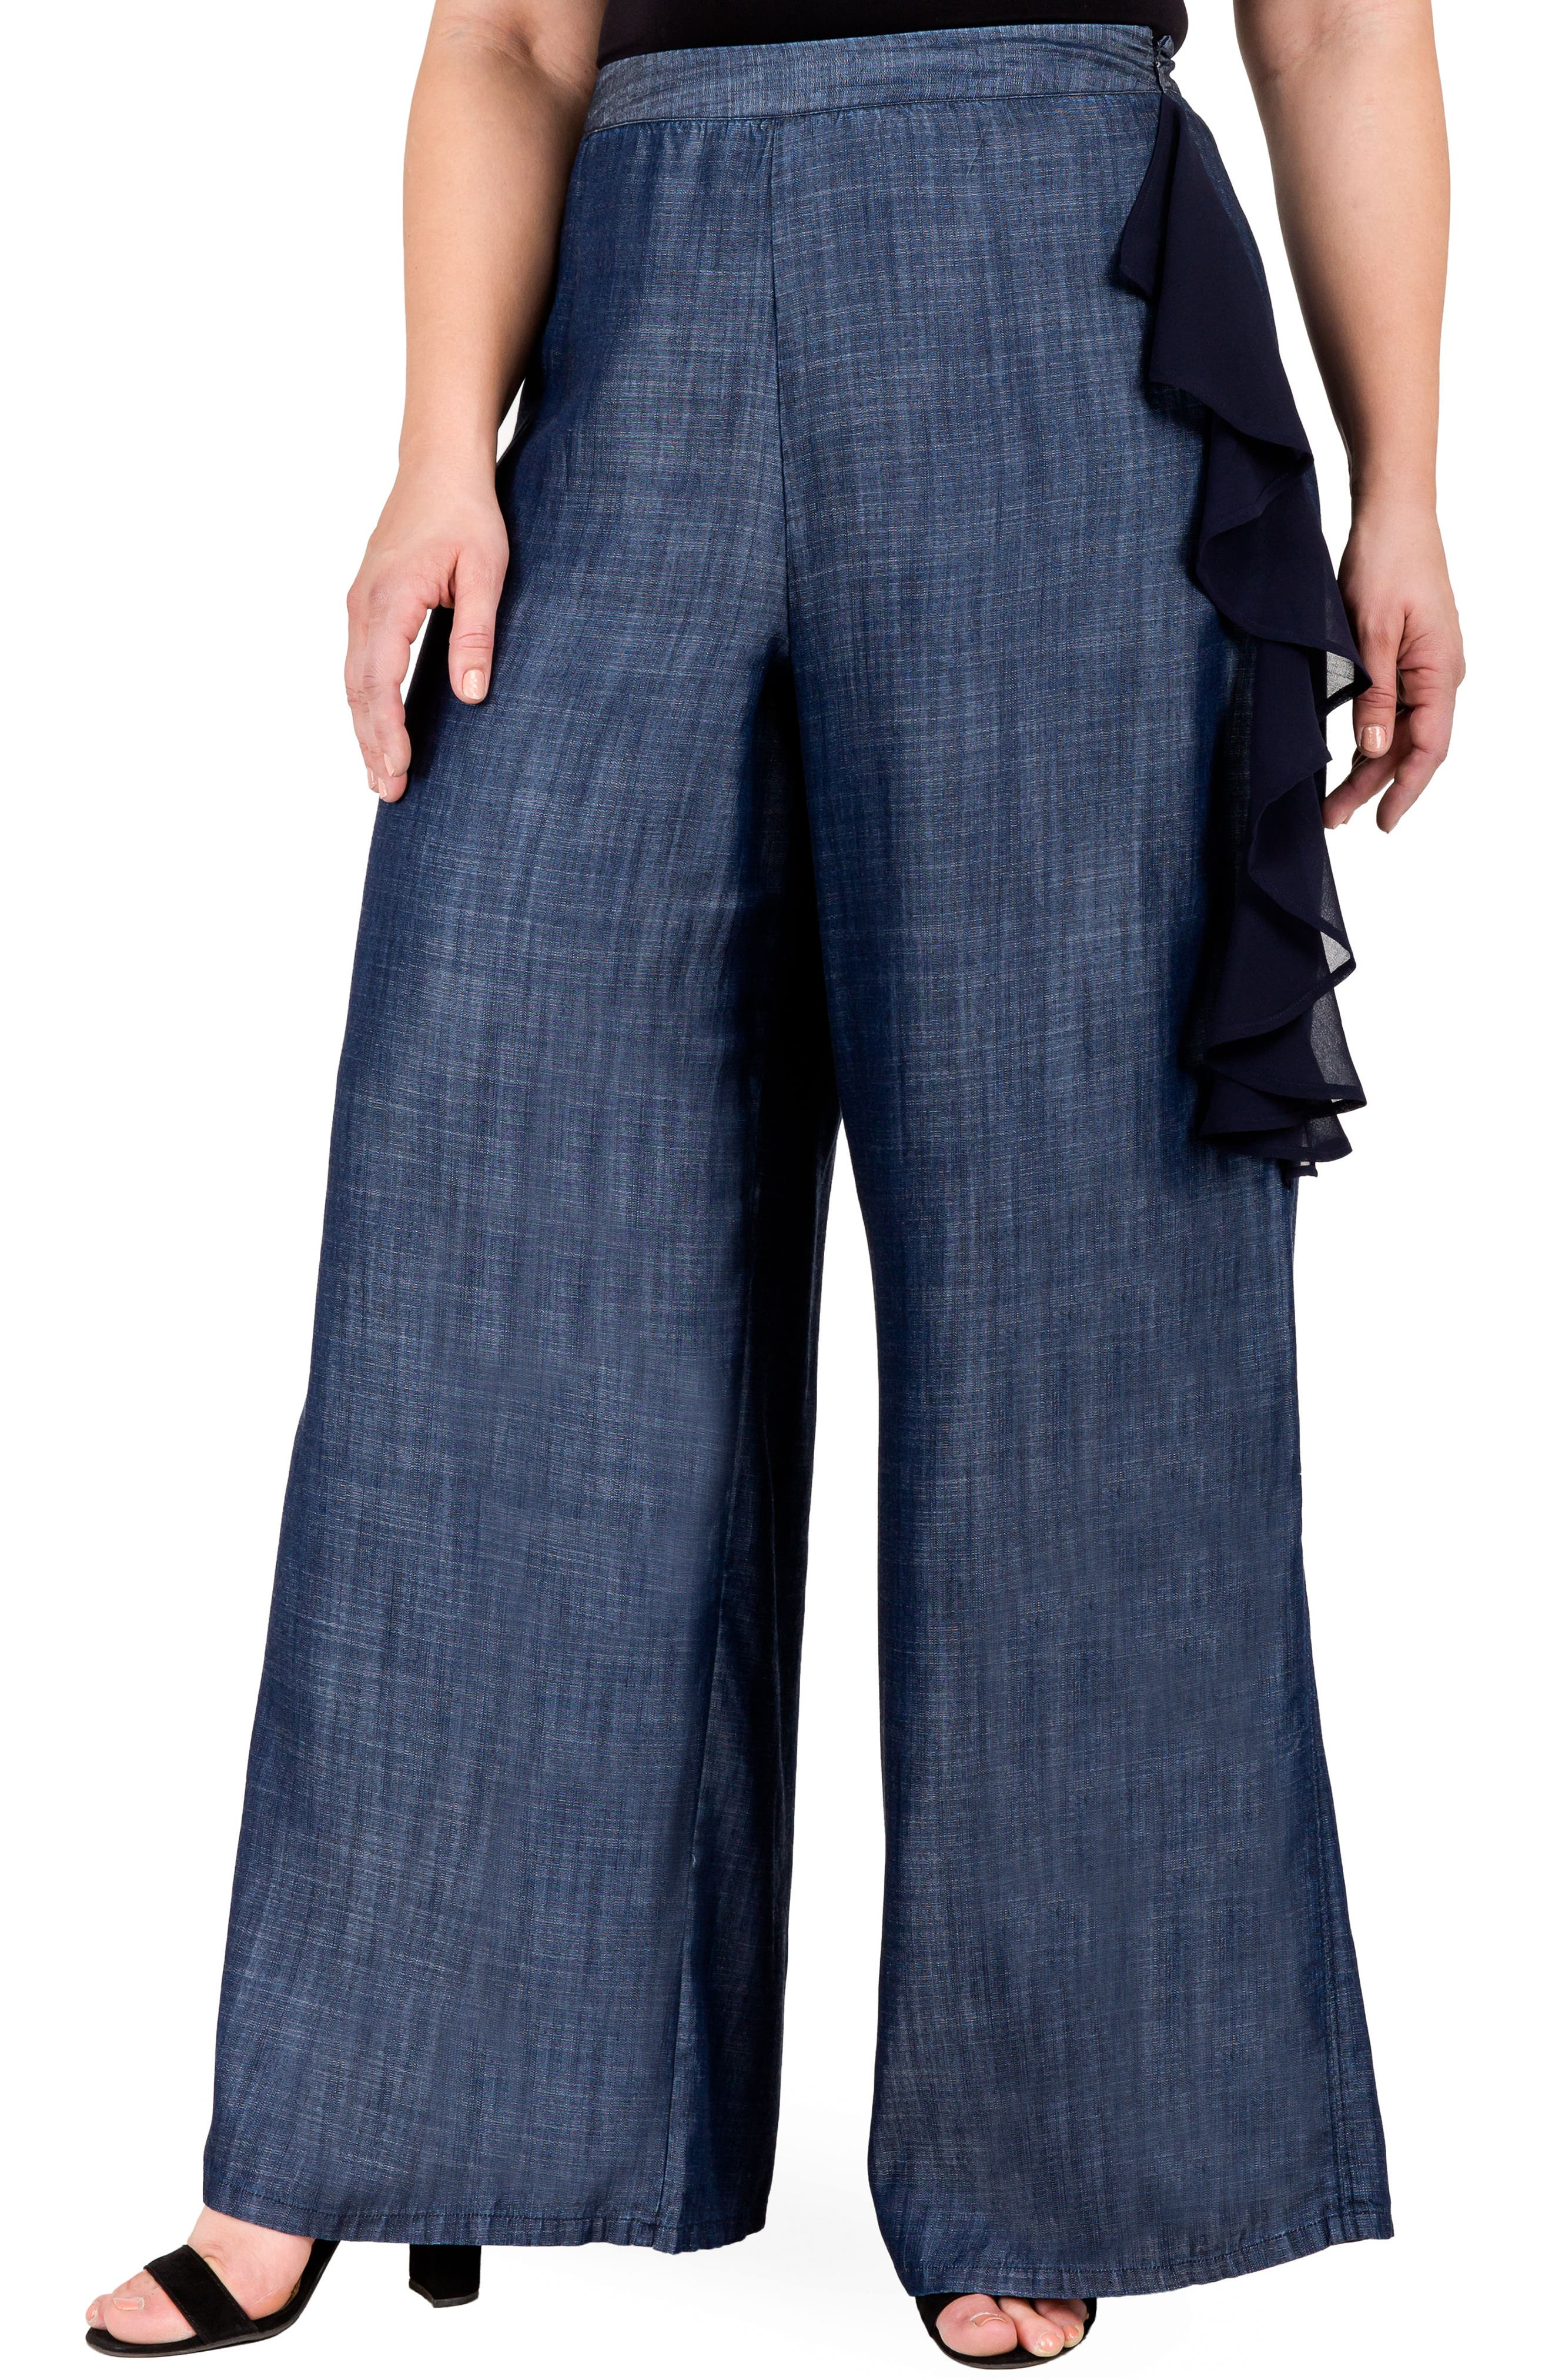 Olga Wide Leg Denim Pants,                             Alternate thumbnail 4, color,                             INDIGO